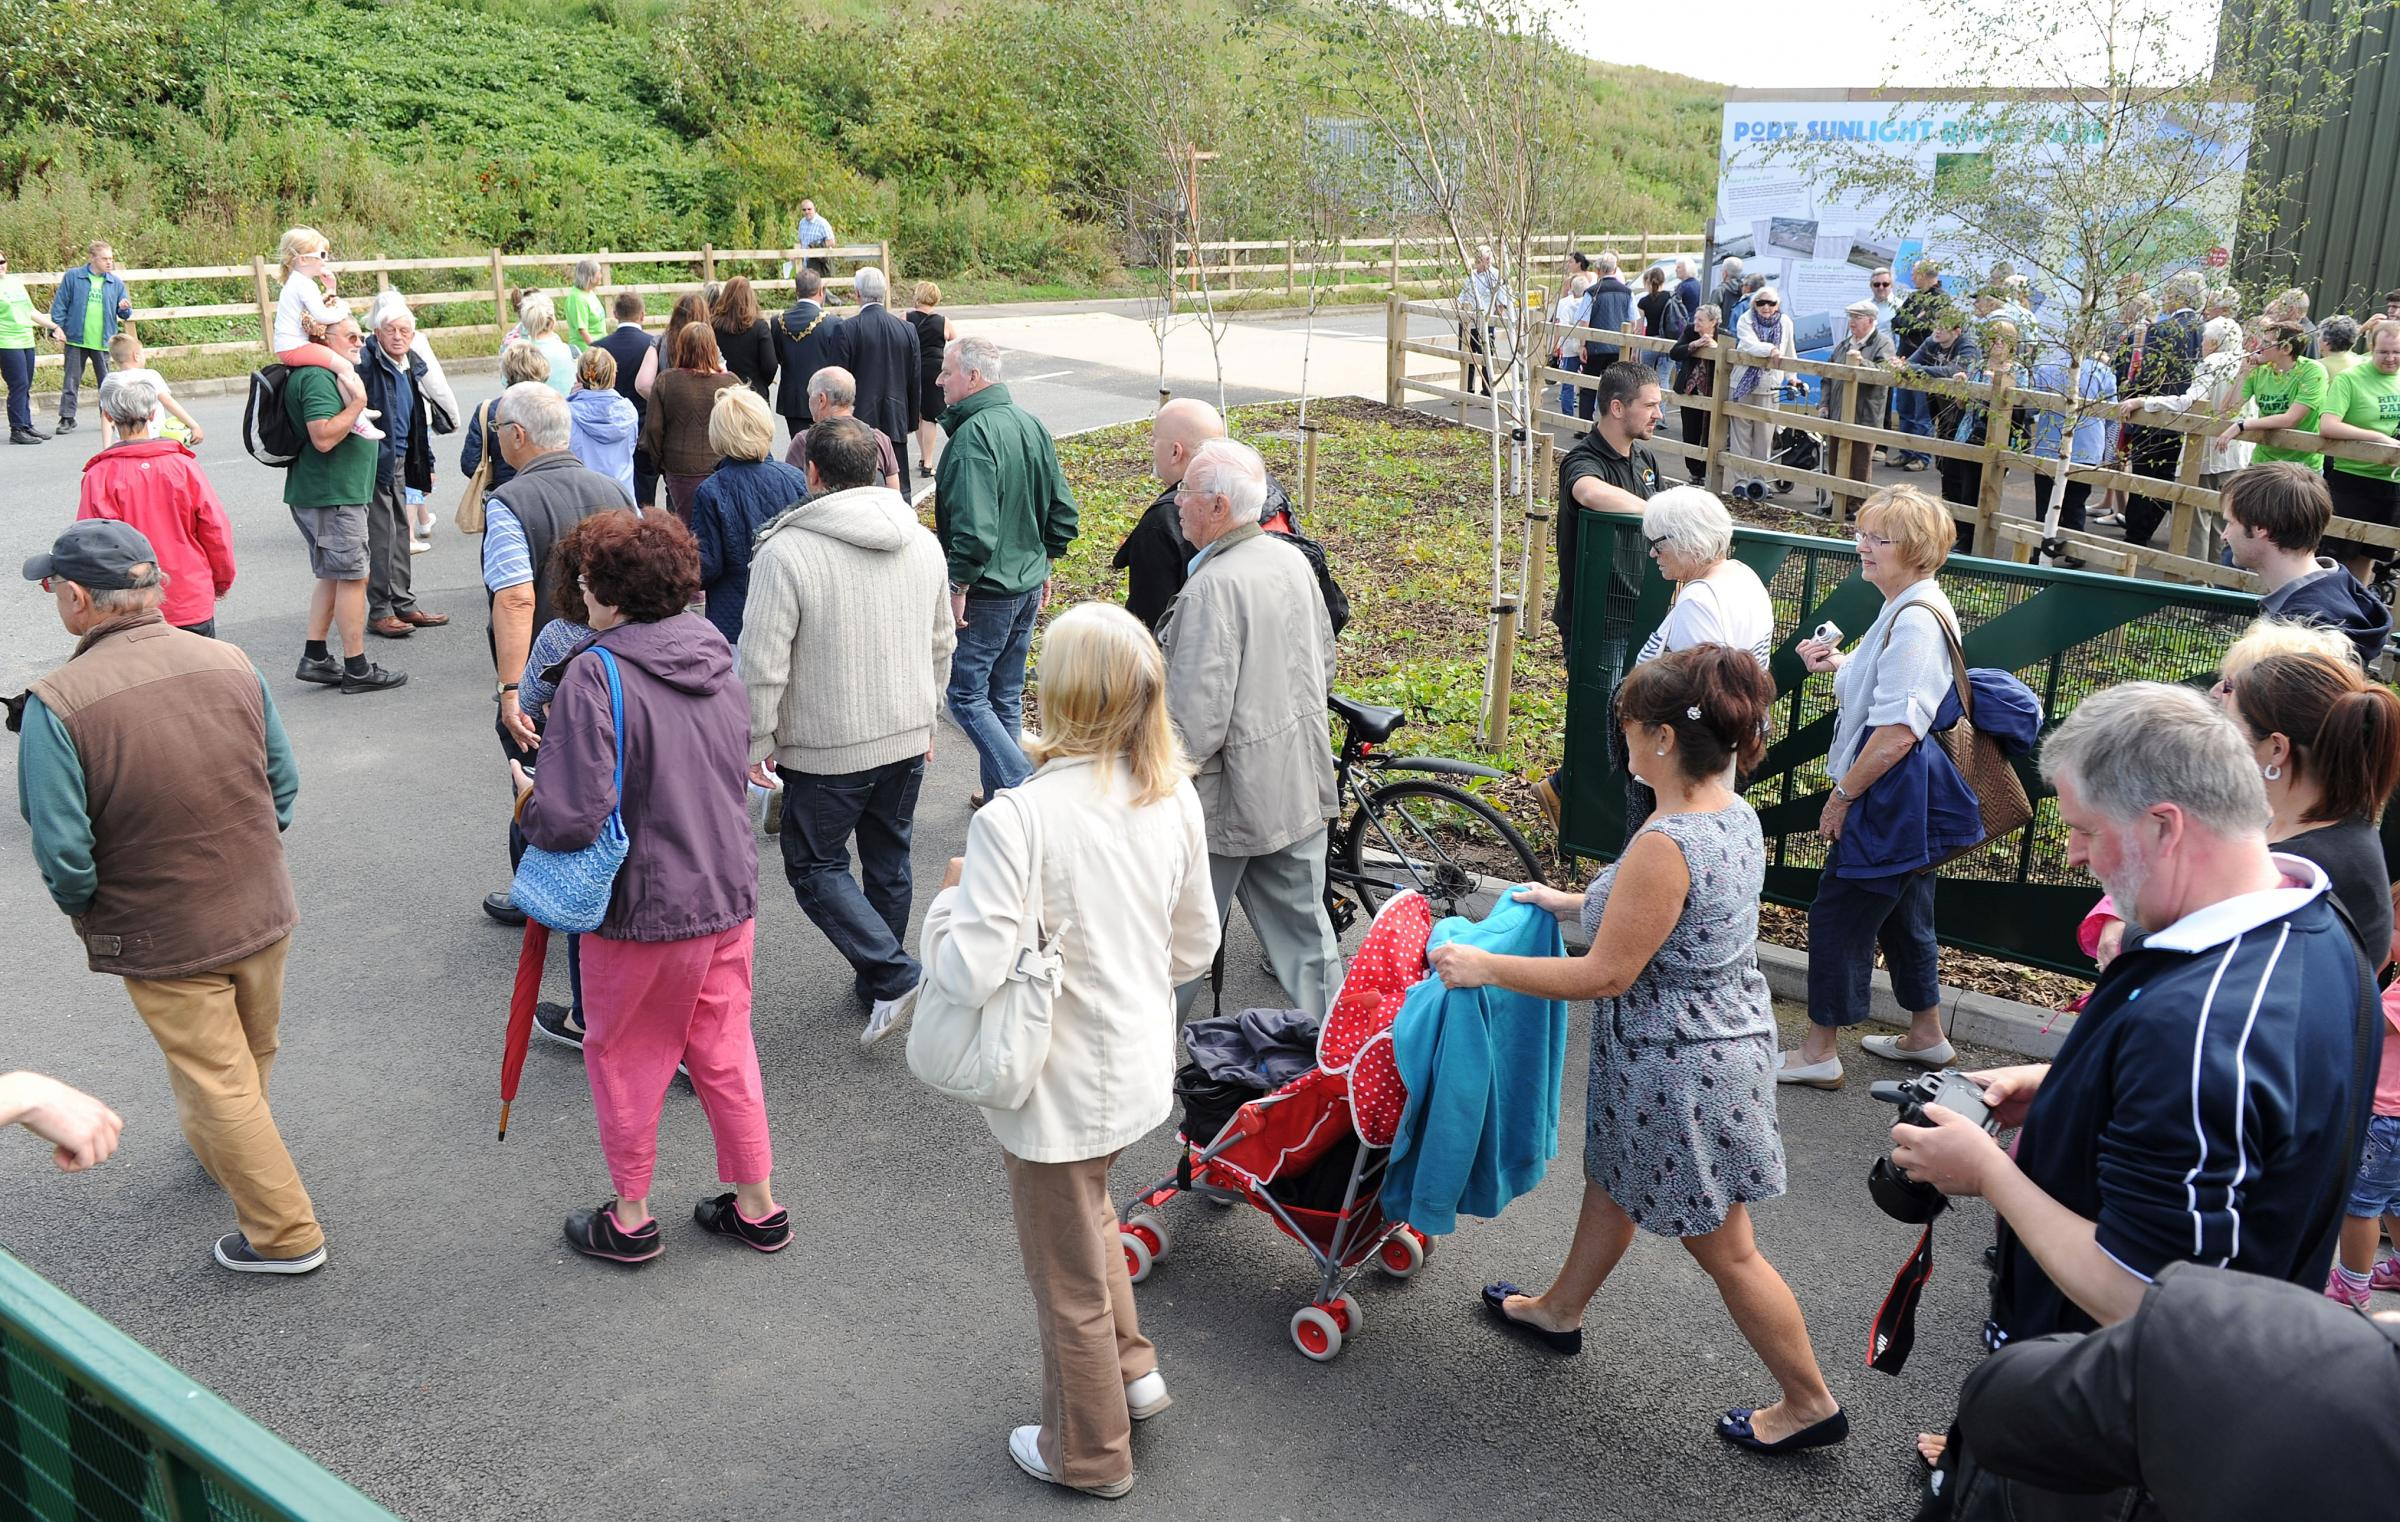 Visitors during opening of Port Sunlight River Park last year. Picture: Paul Heaps